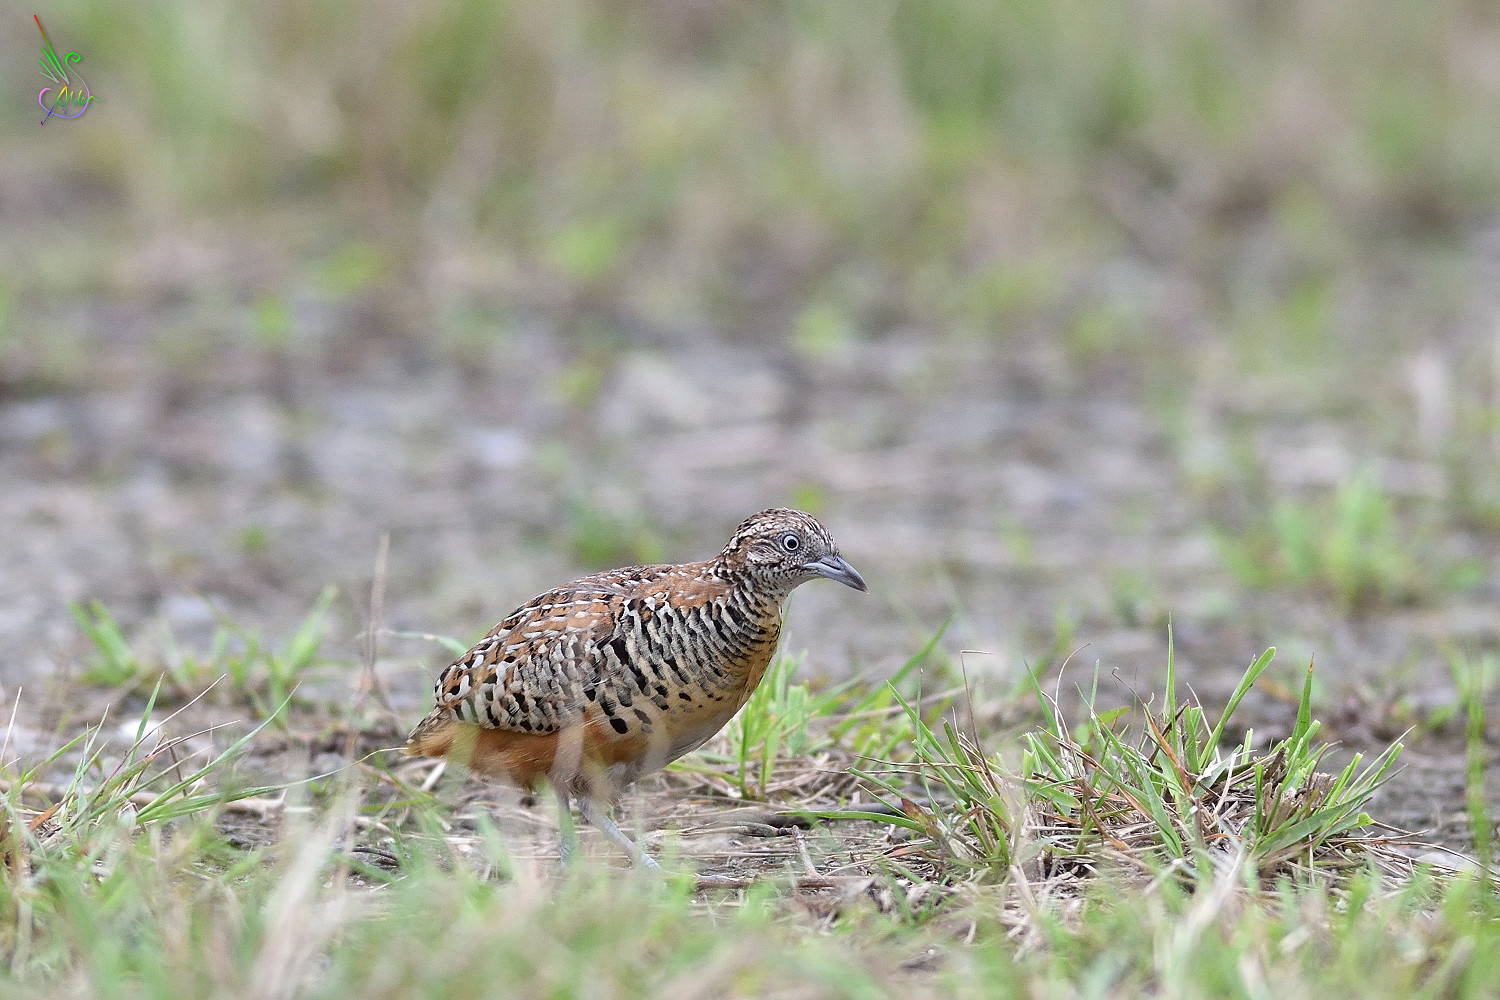 Barred_Buttonquail_8610